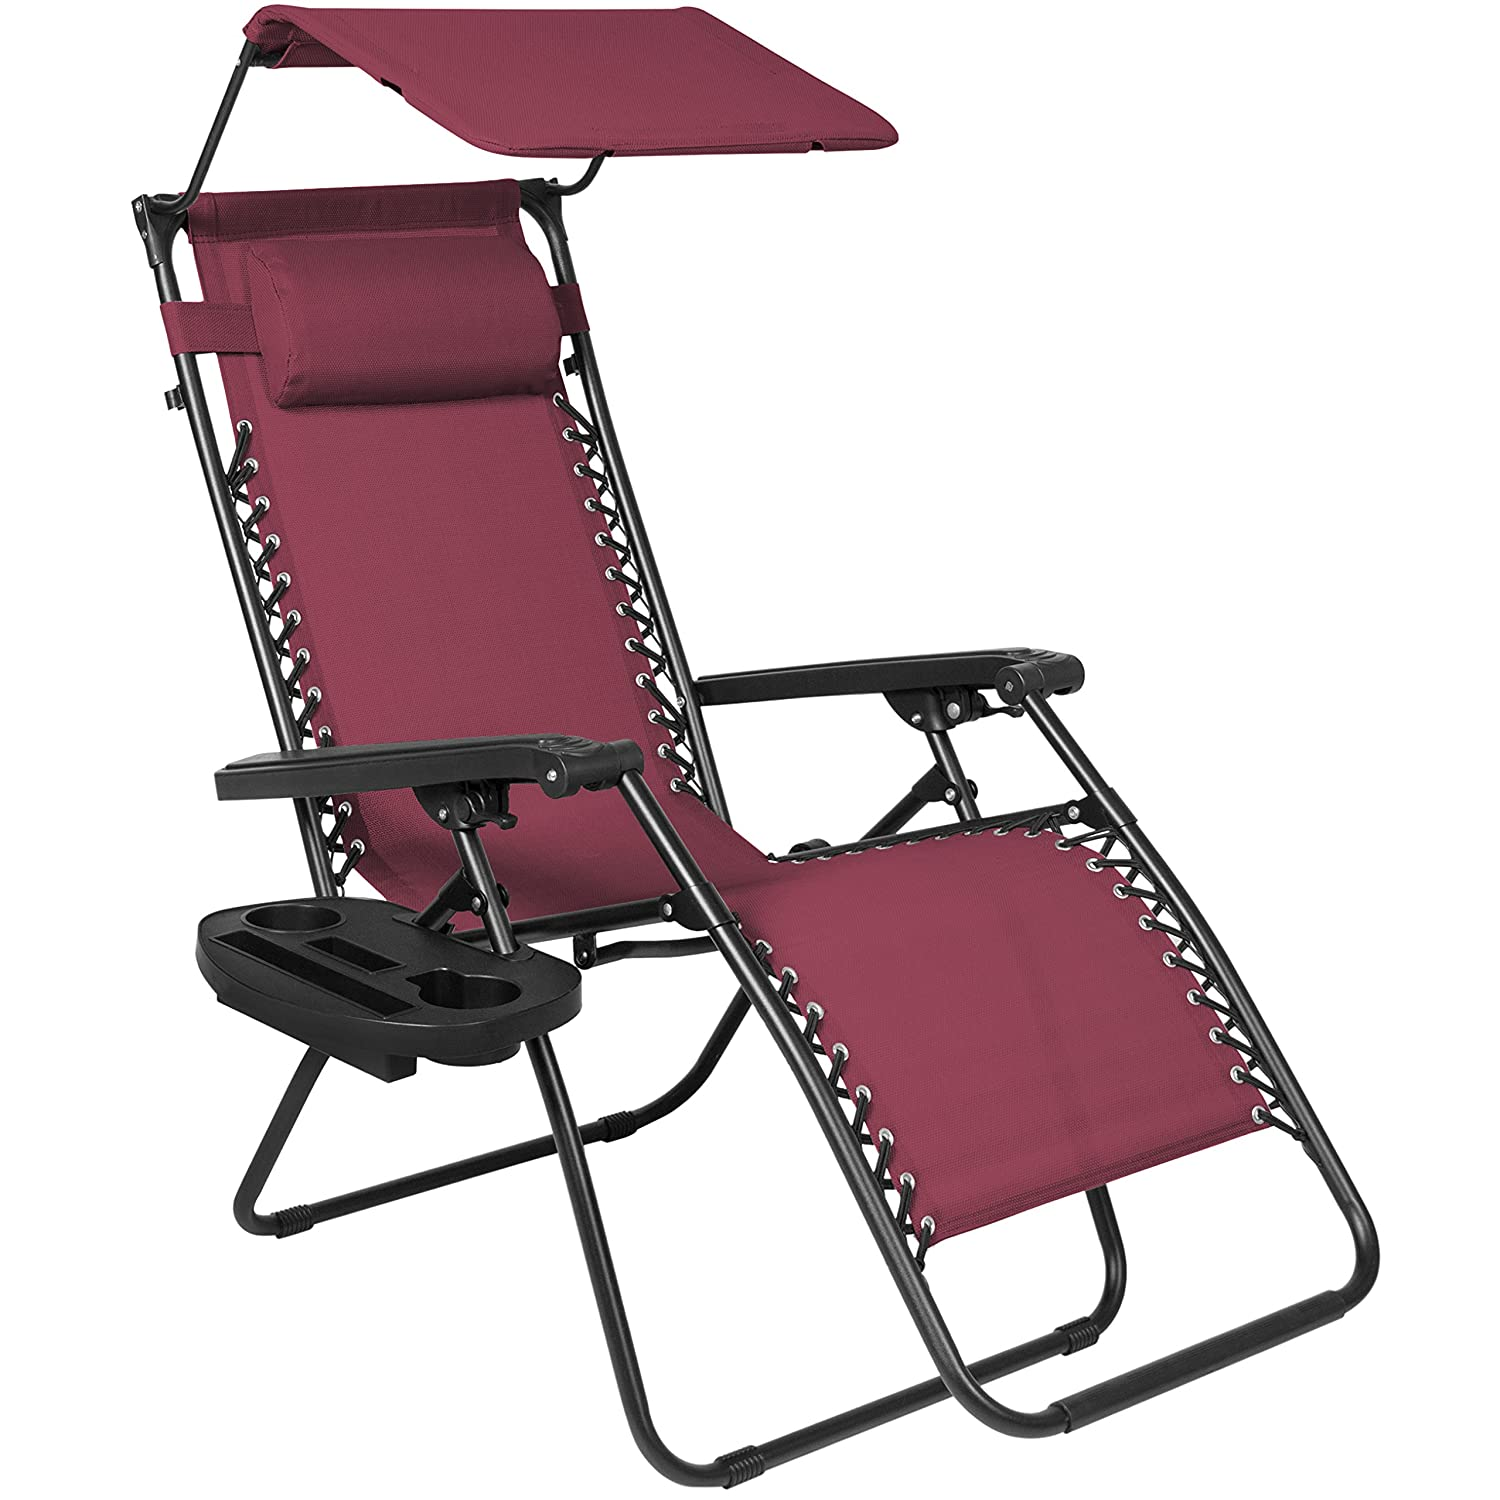 Best Choice Products Folding Zero Gravity Recliner Lounge Chair w/Canopy Shade and Cup Holder Tray - Burgundy